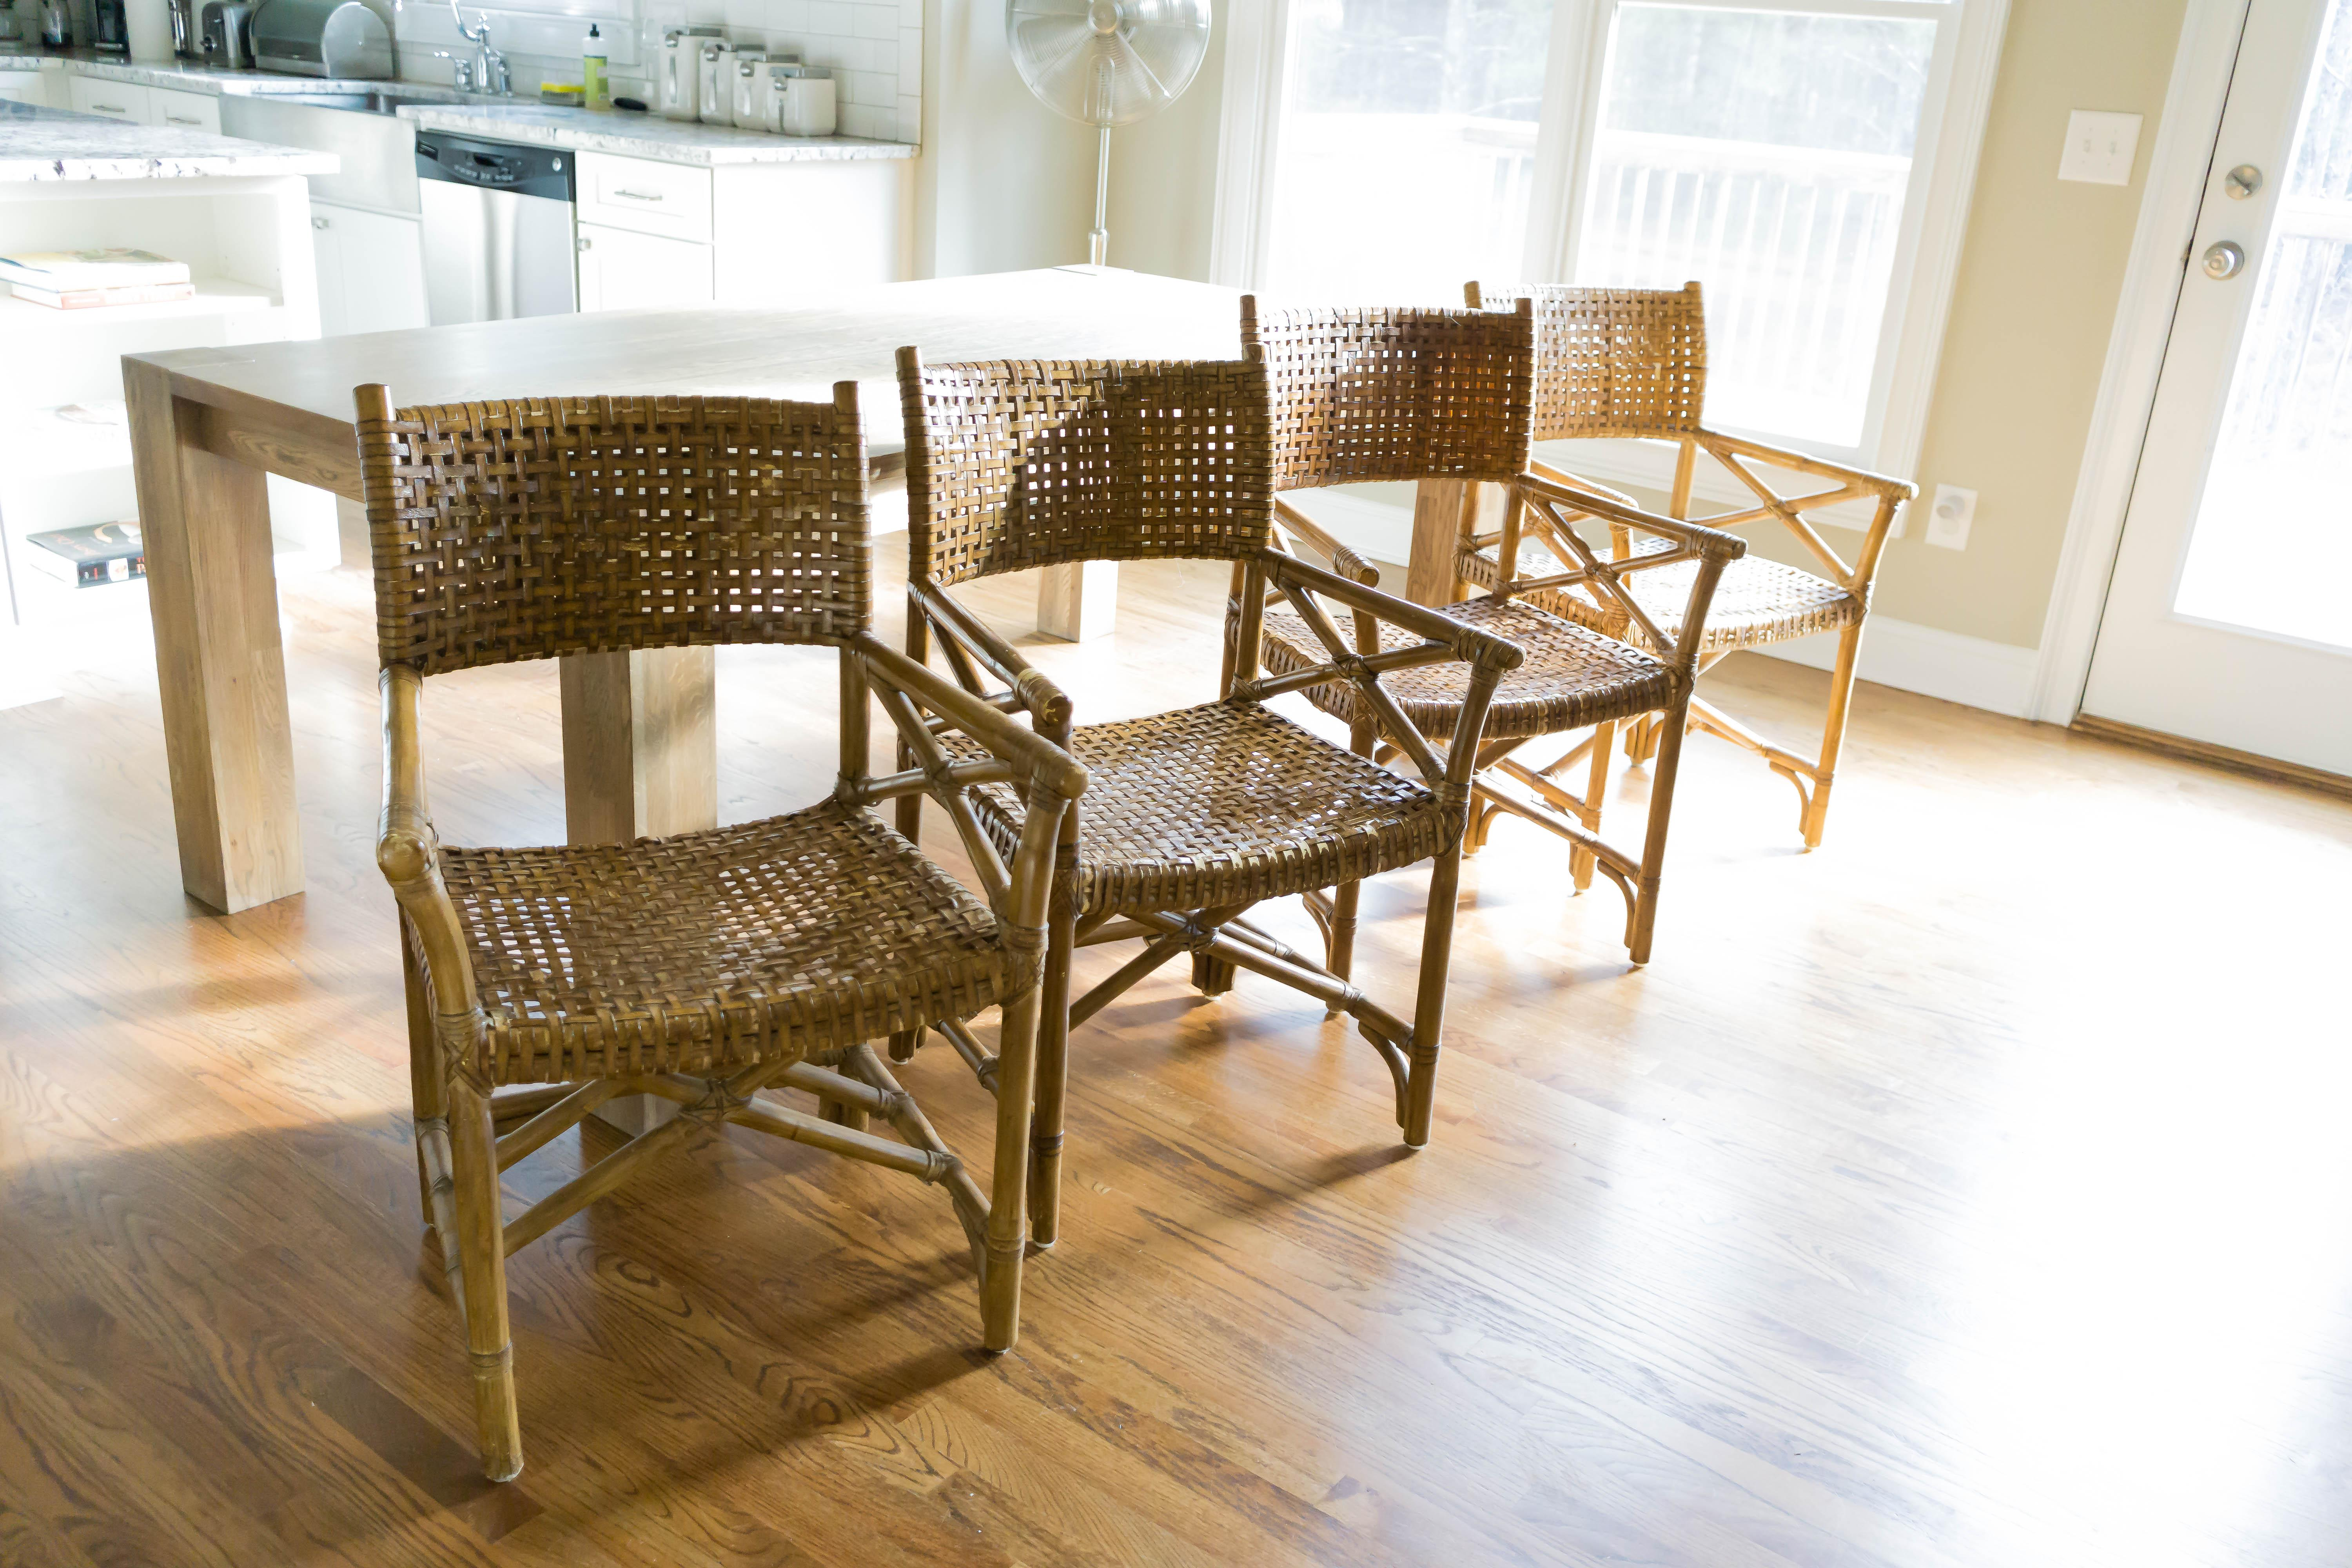 mcguire furniture company laced. McGuire Laced Rawhide Armchairs - Set Of 4 Image 6 Mcguire Furniture Company